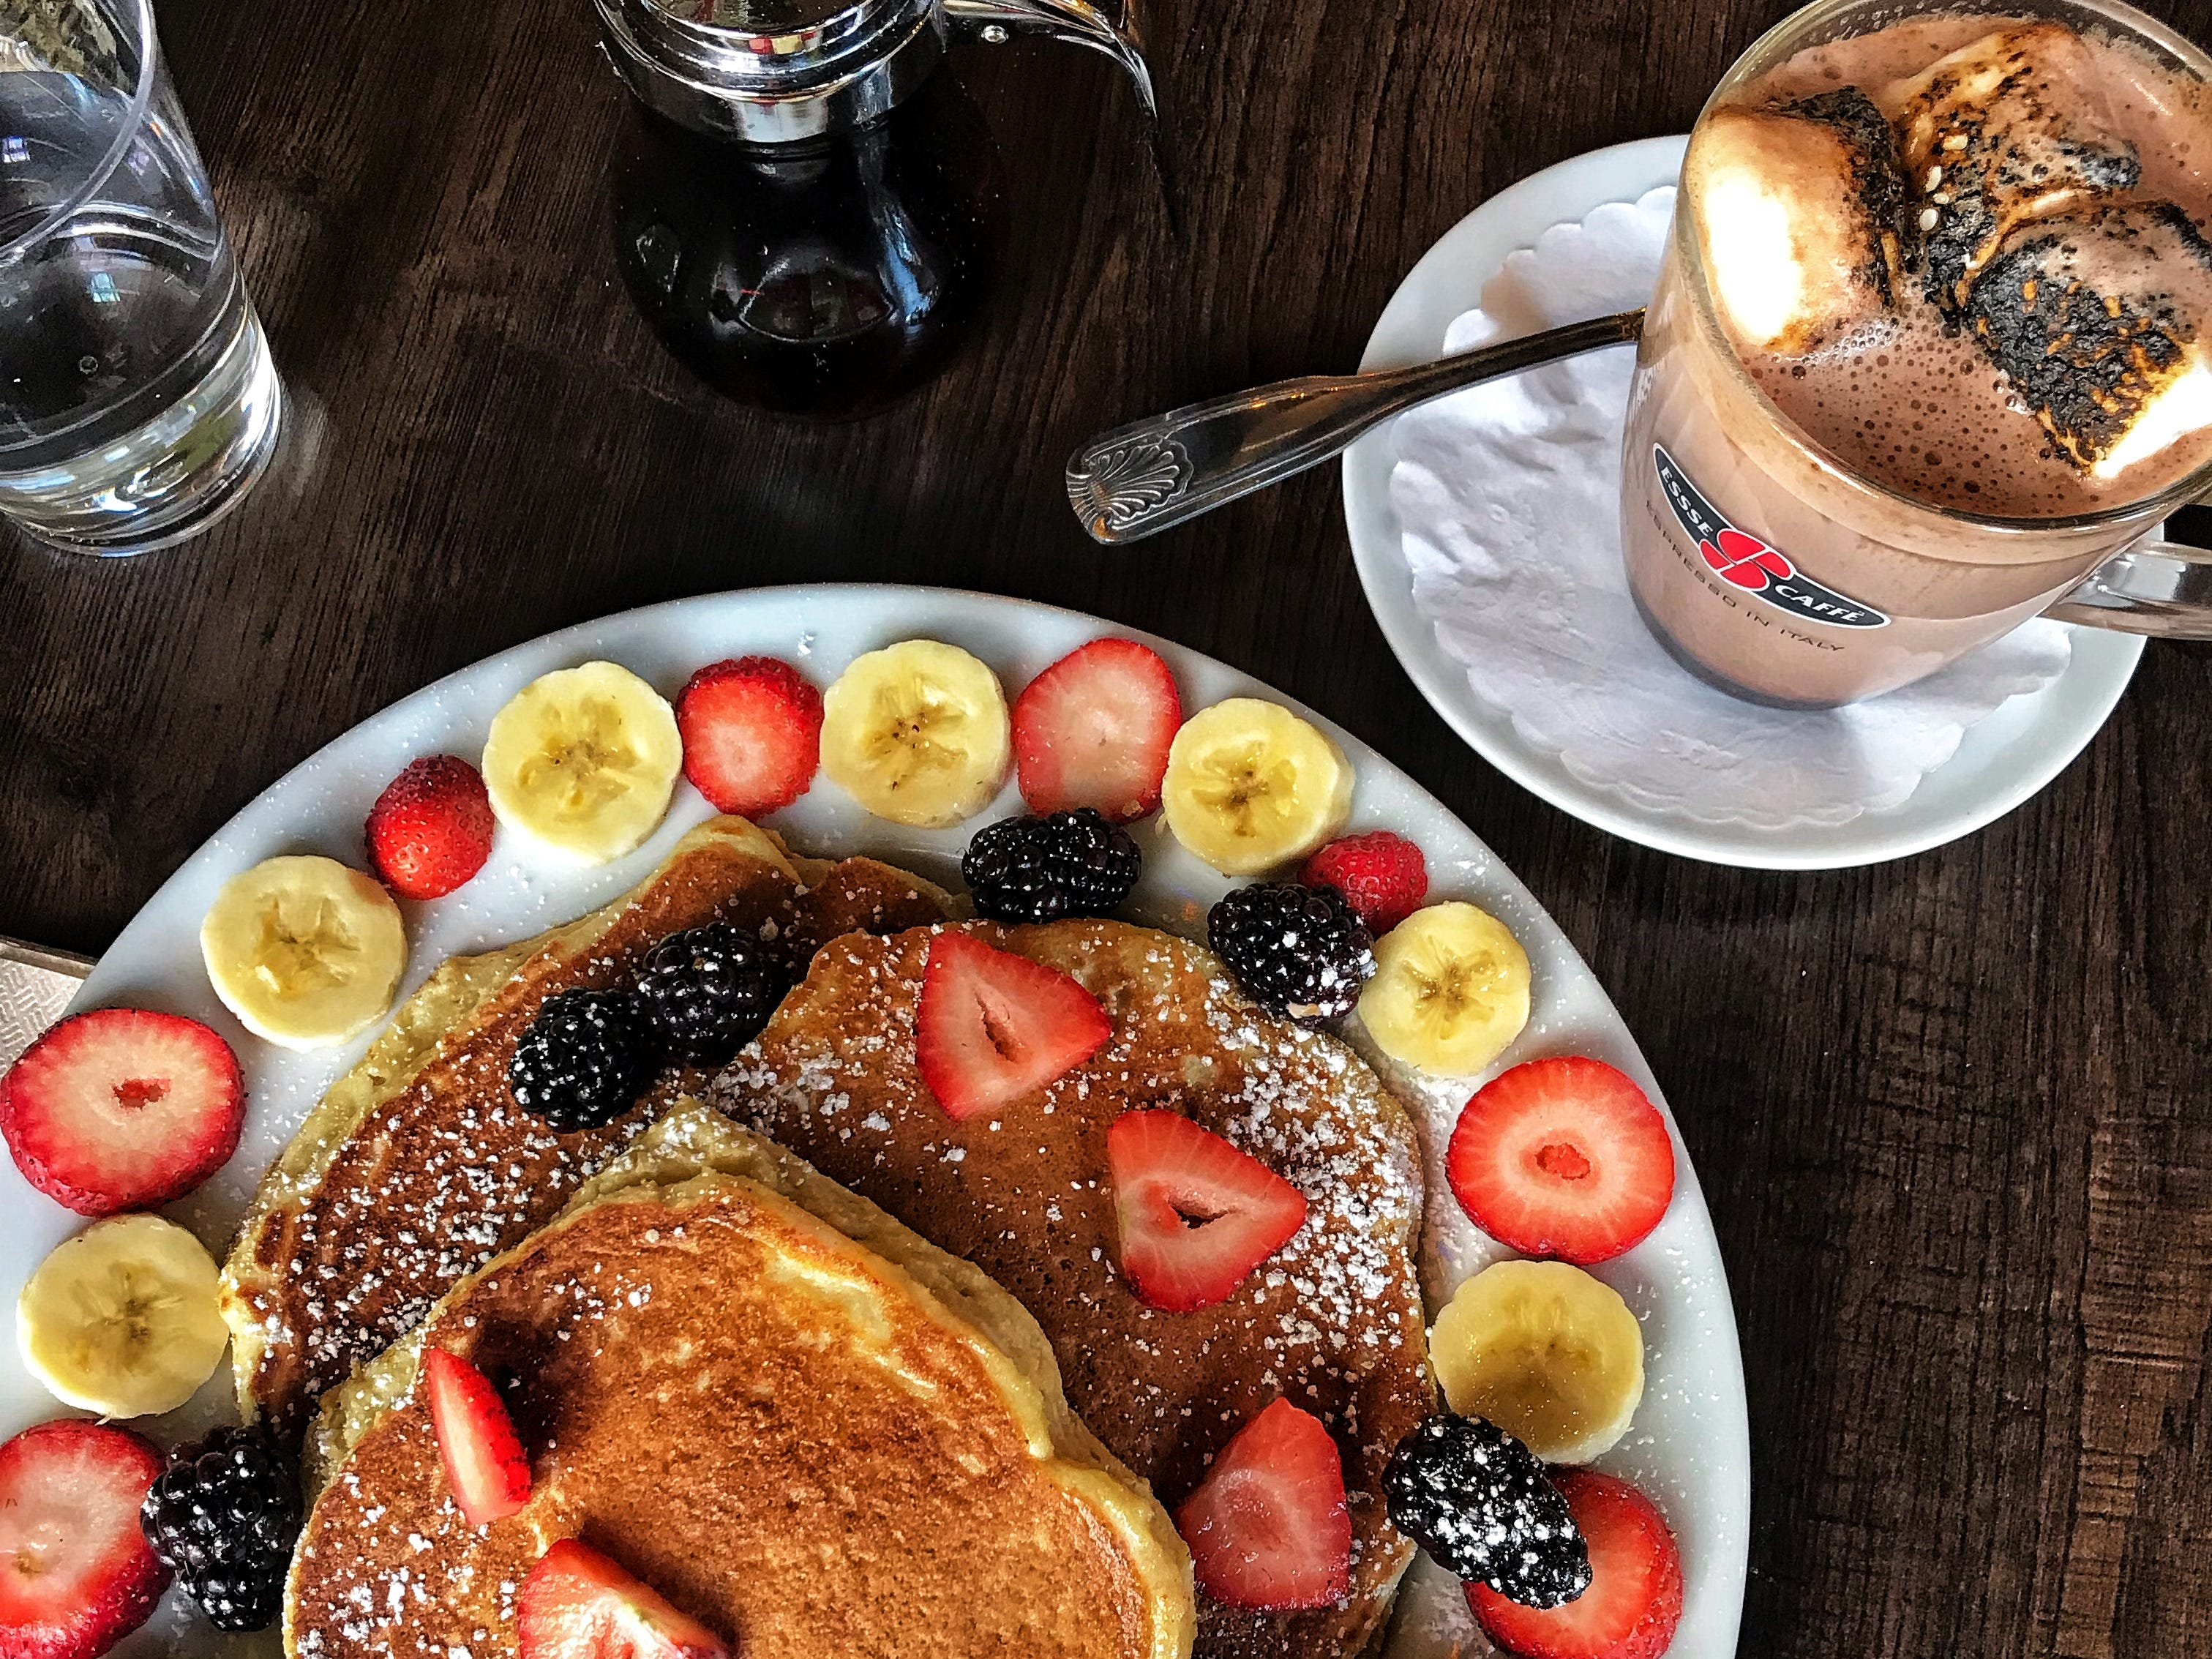 Paleo pancakes and hot chocolate at Stan'z Cafe in Larchmont. Photographed Dec. 12, 2018.